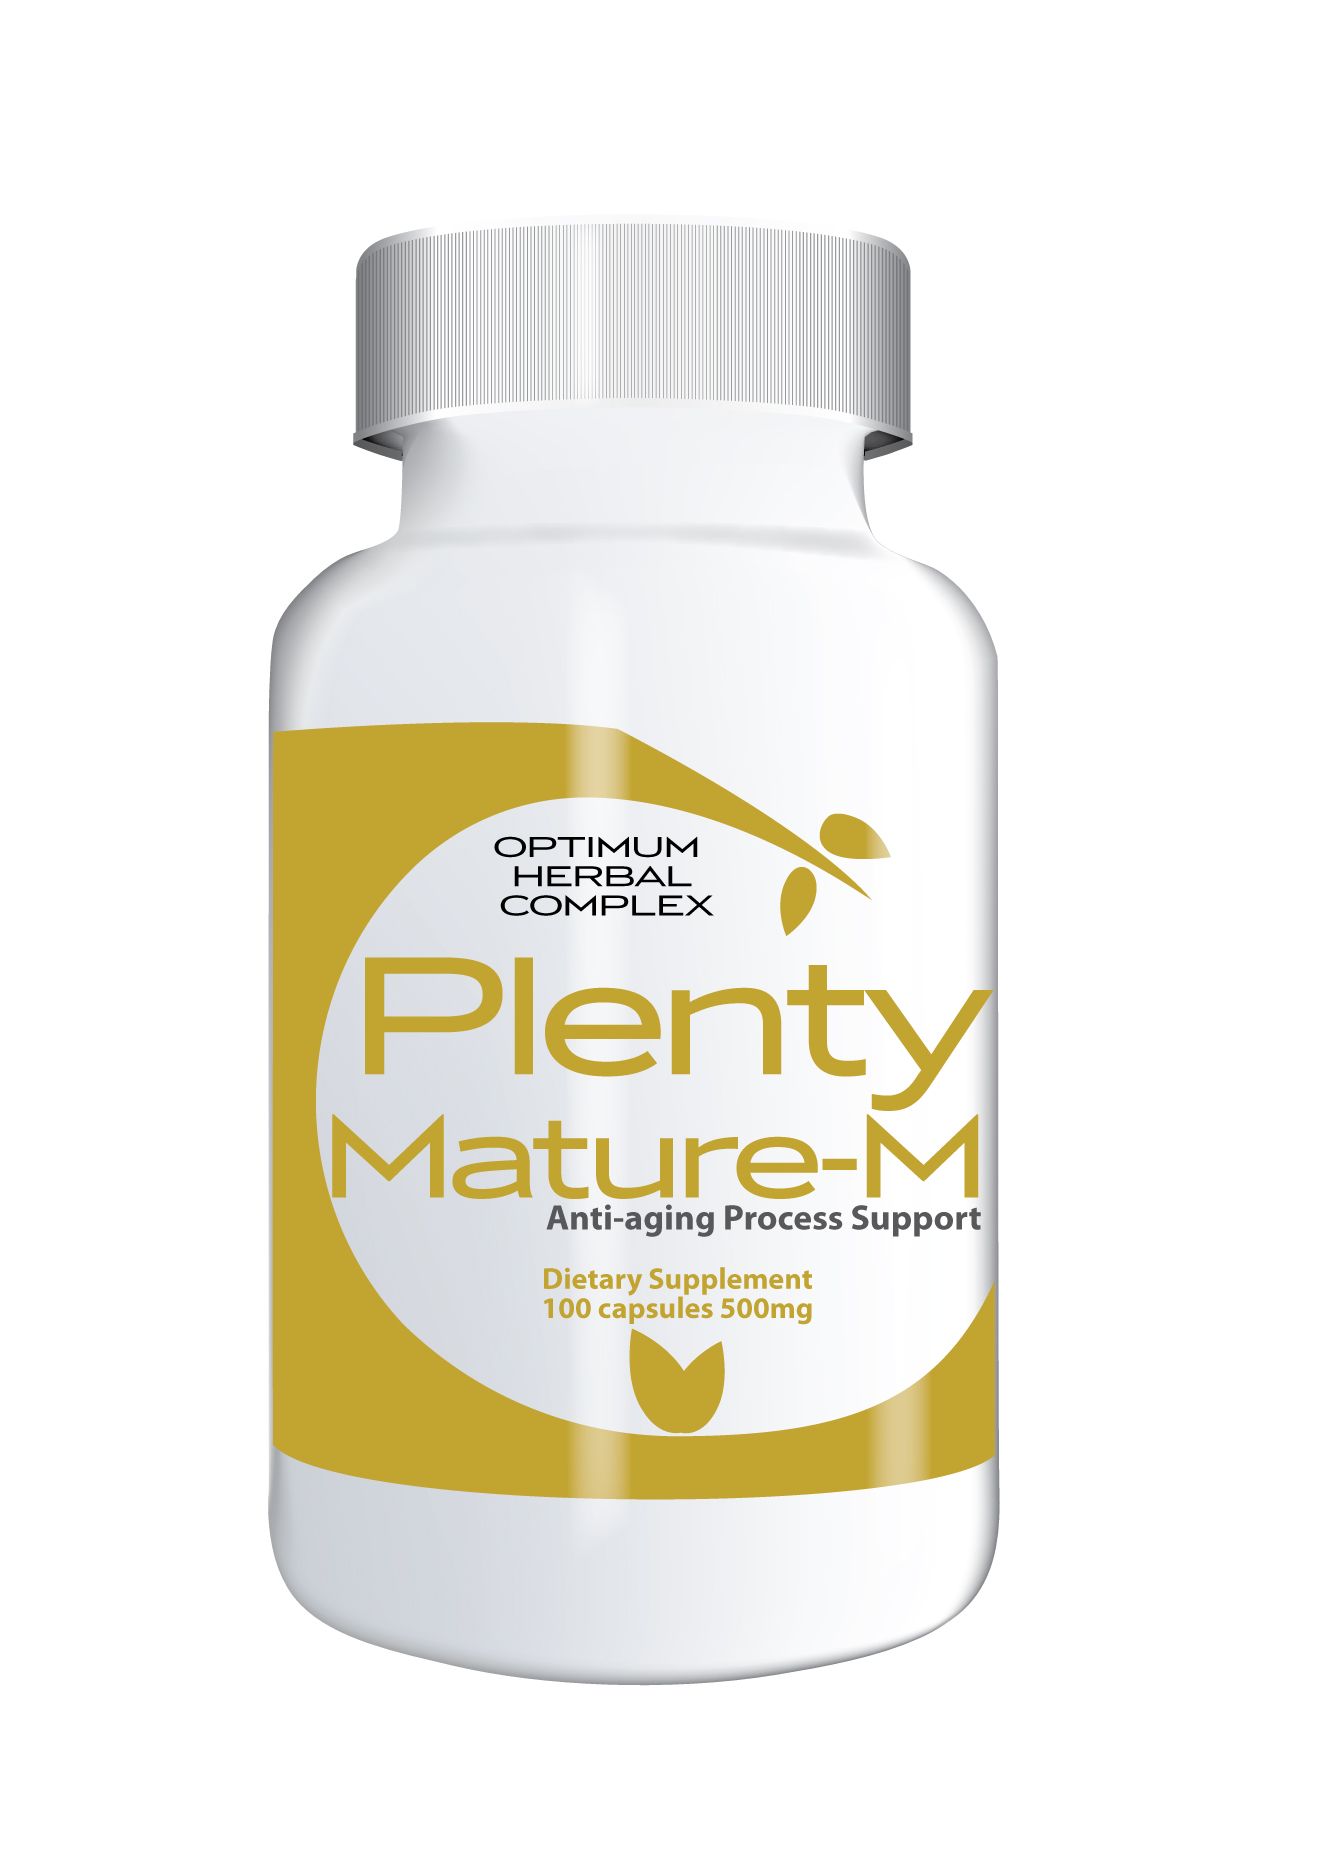 Plenty Mature-M 100 capsules 500mg